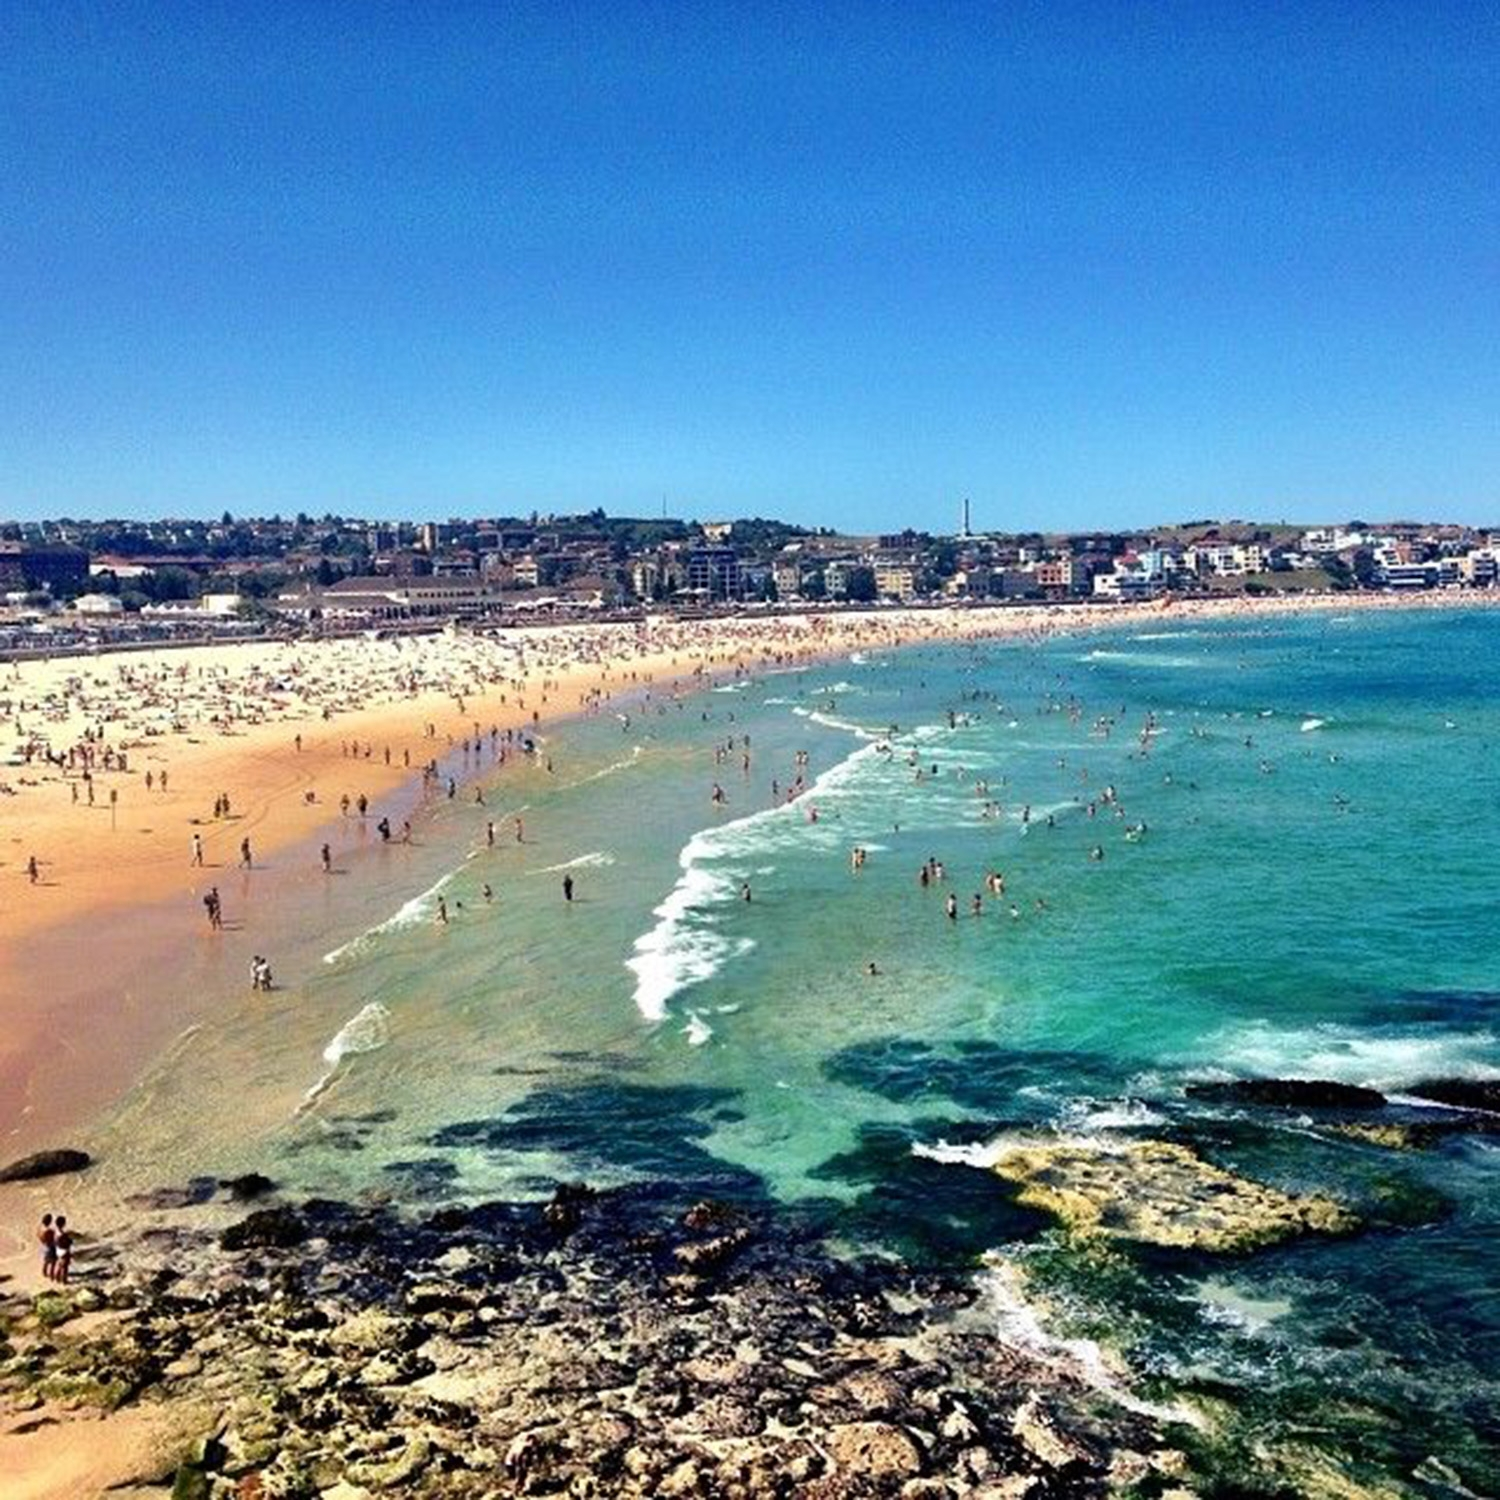 A very busy Bondi Beach on a warm day